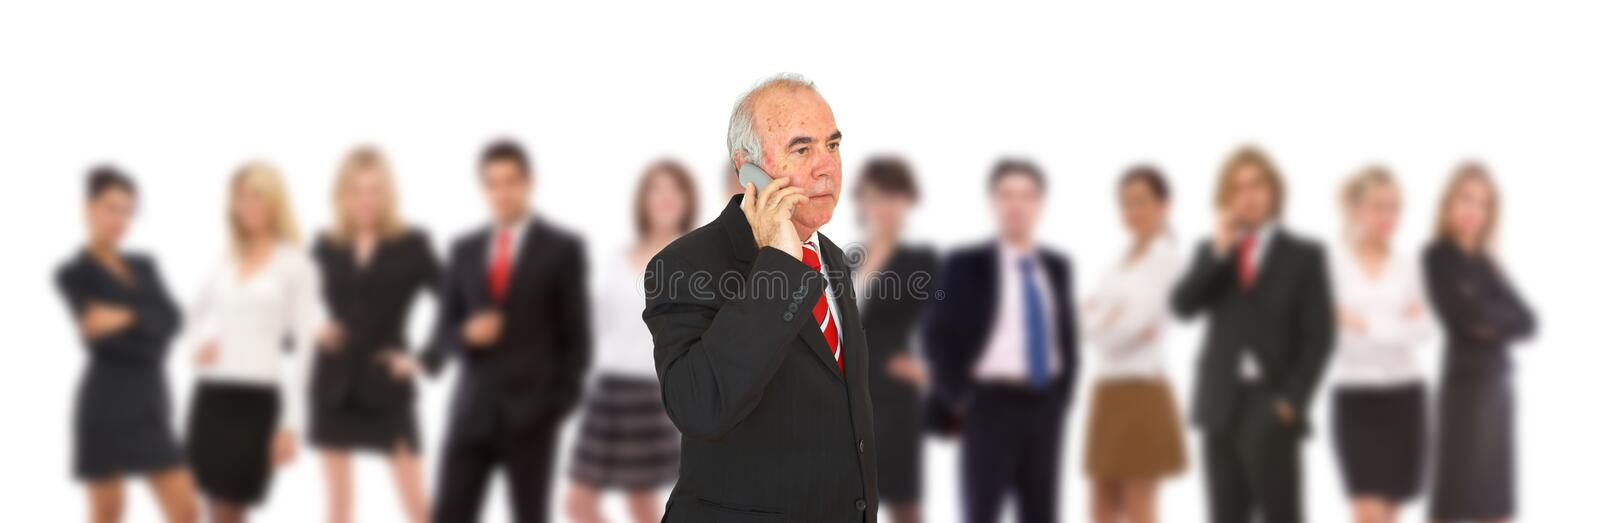 Download Business communications stock image. Image of communication - 10854389